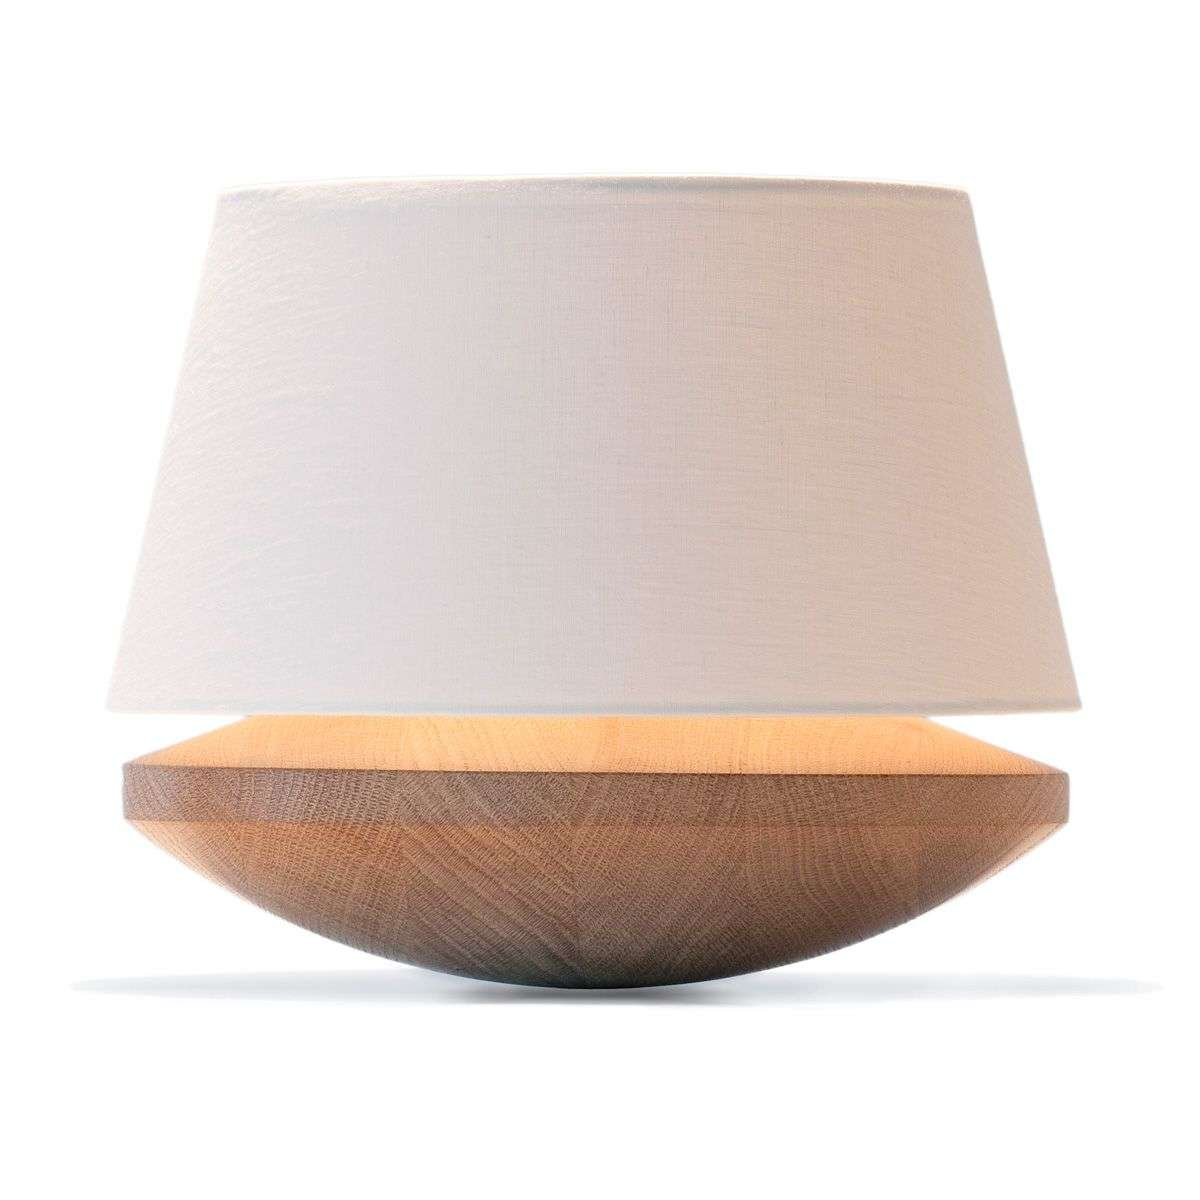 Kjell table lamp with linen lampshade cream lights kjell table lamp with linen lampshade cream 2600496 31 mozeypictures Choice Image